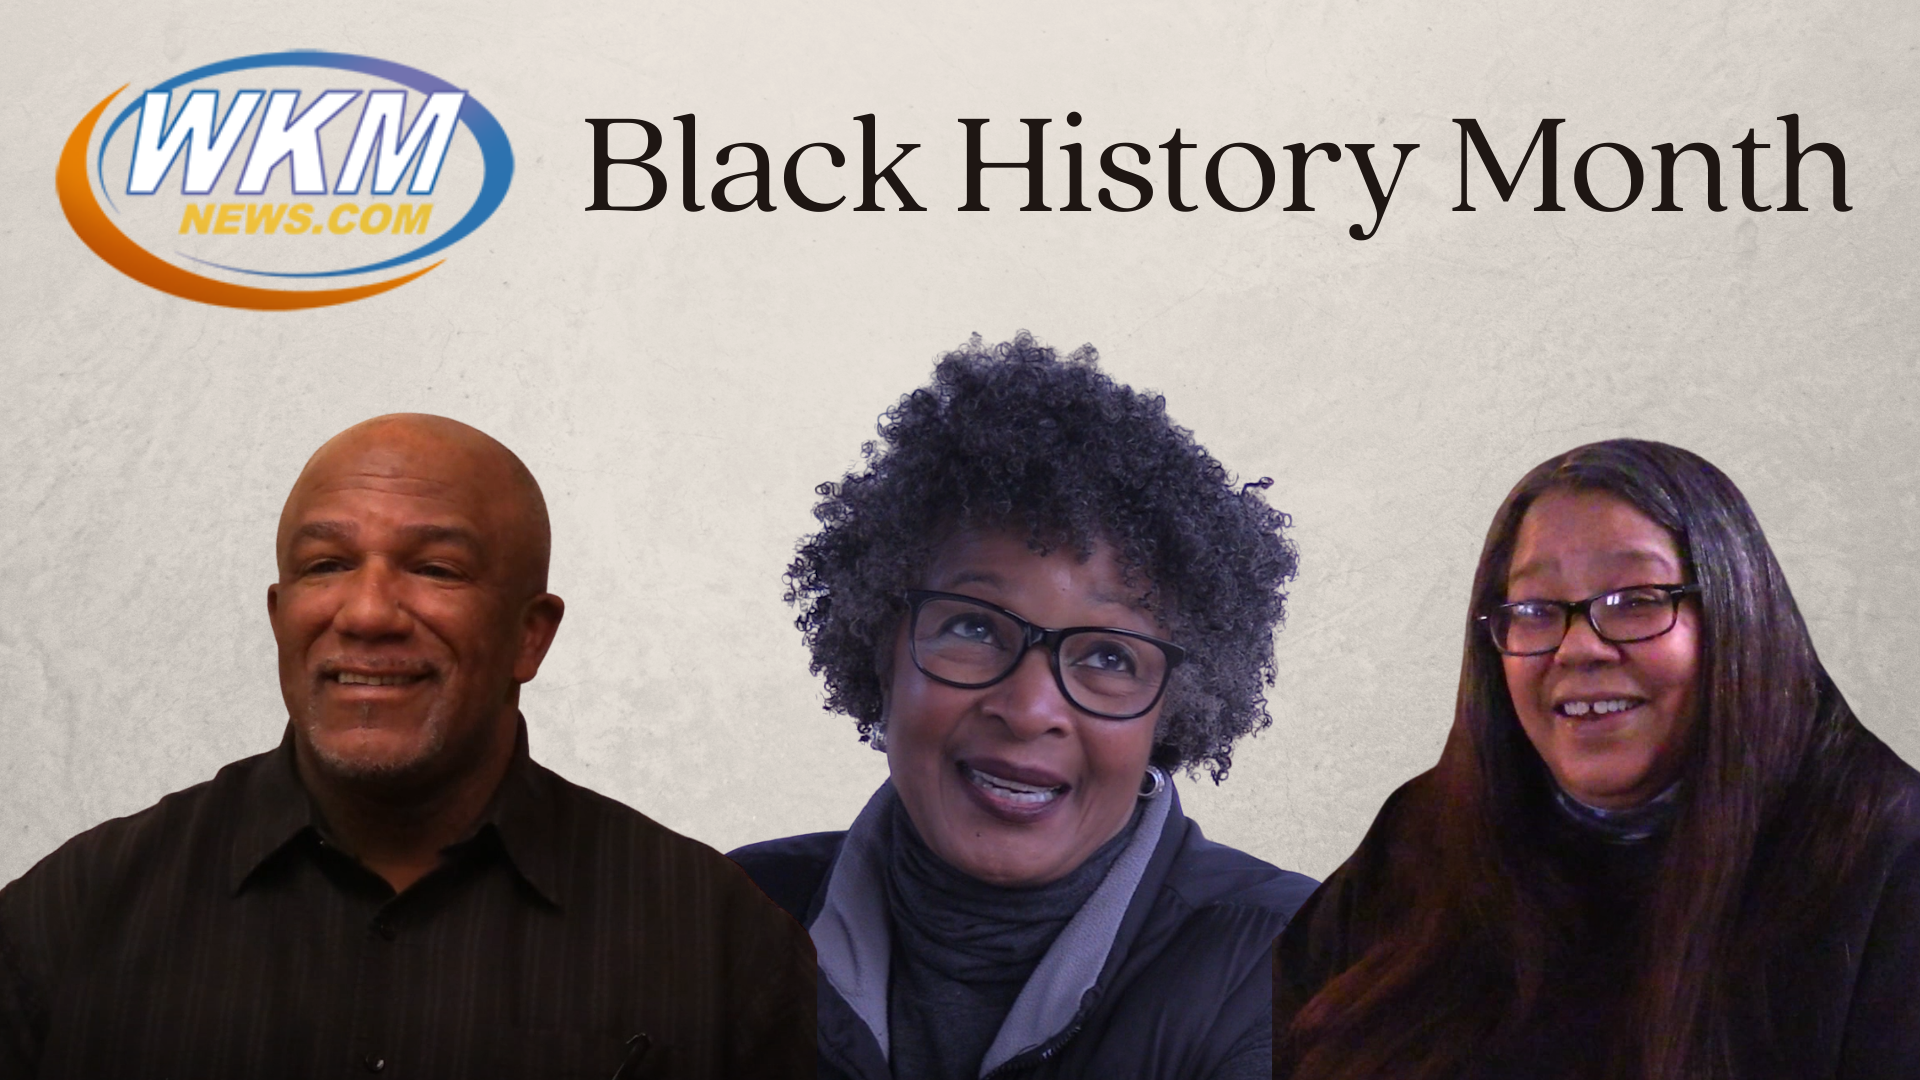 Black History in Jefferson County; a Painter, a Pastor and a Master of Science Share Their Perspective